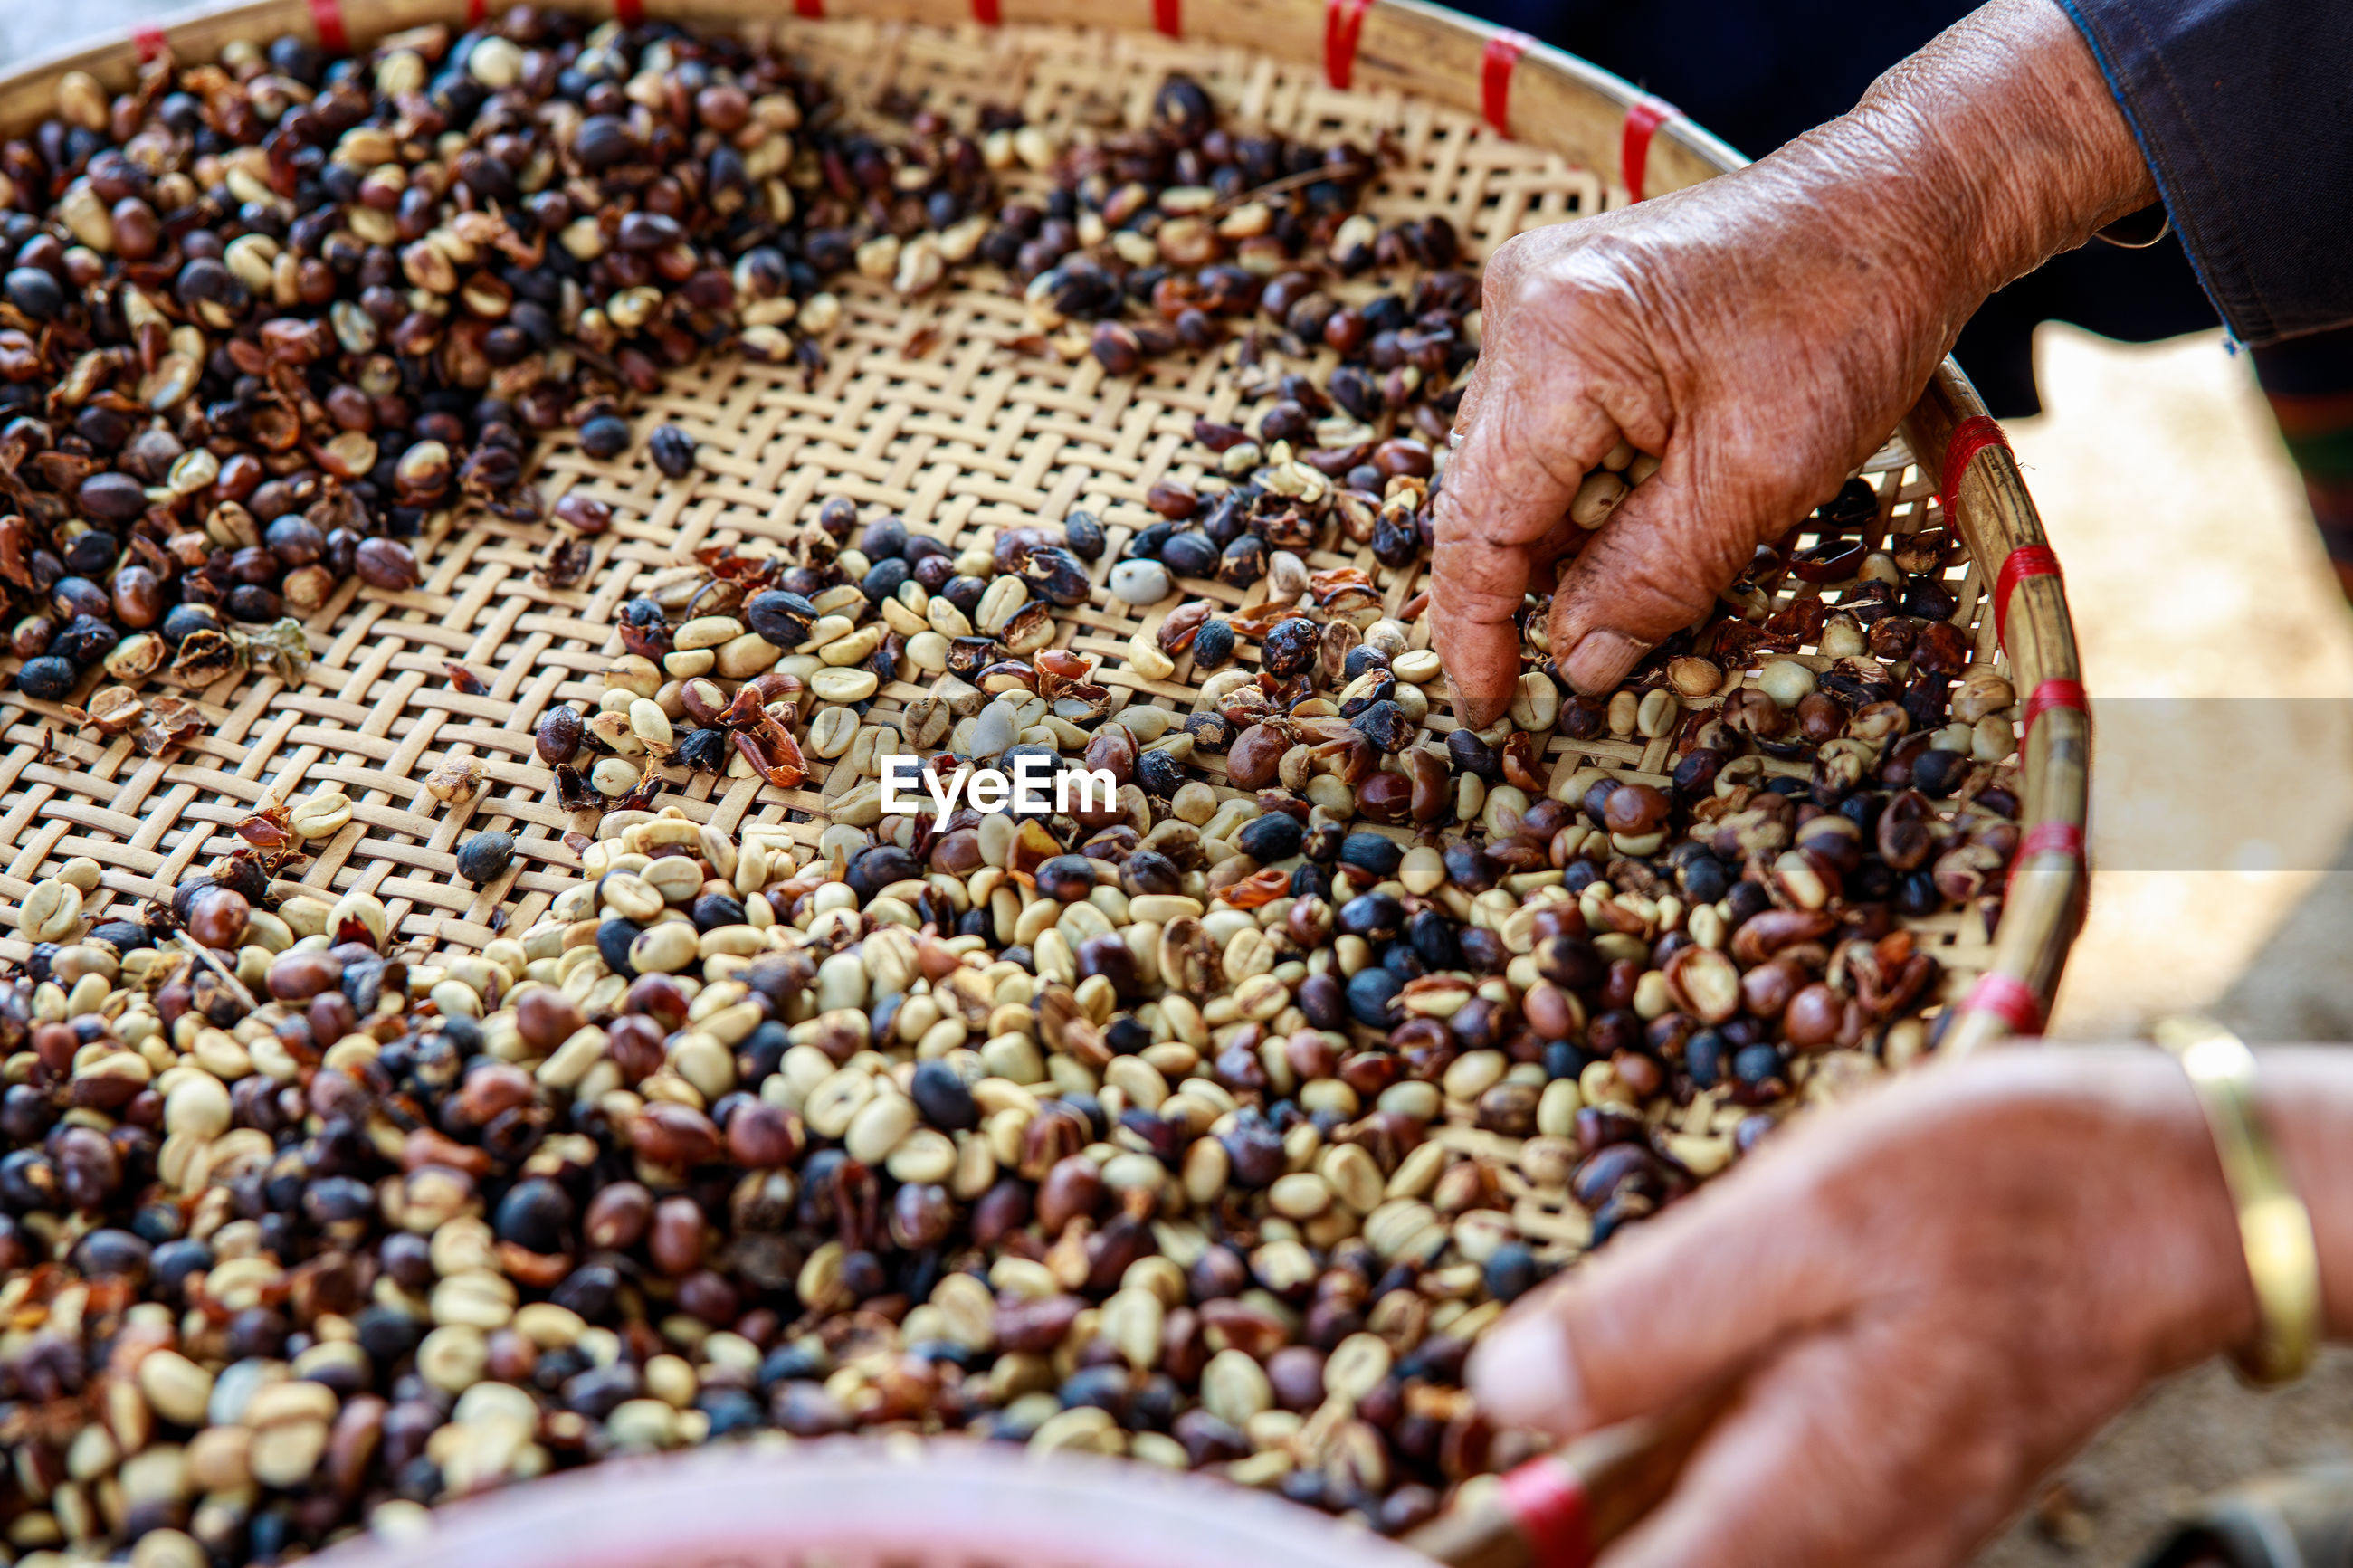 Process of sorting dried coffee beans by hand farmers